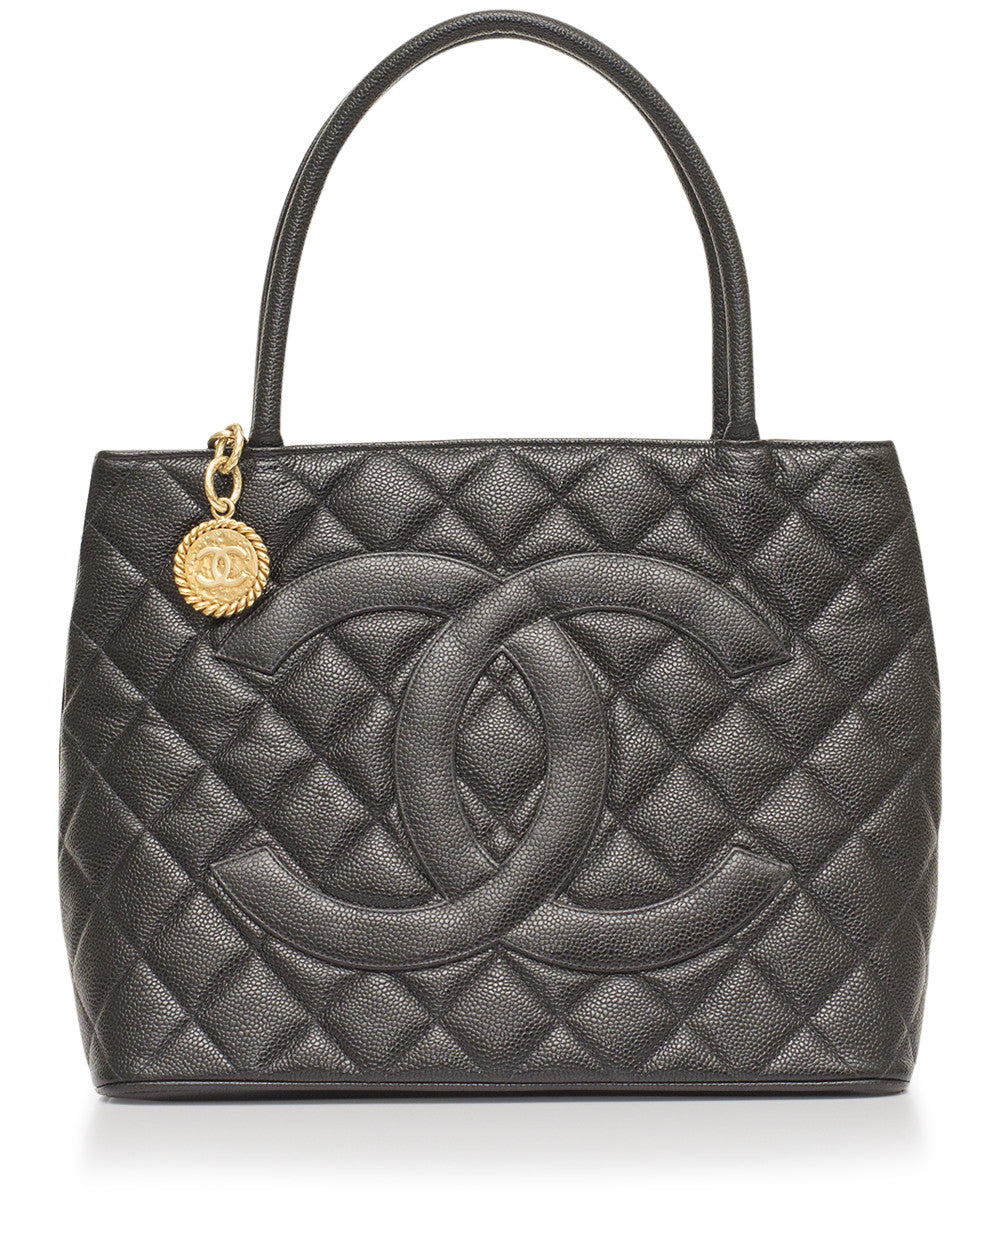 Black Caviar Medallion Tote